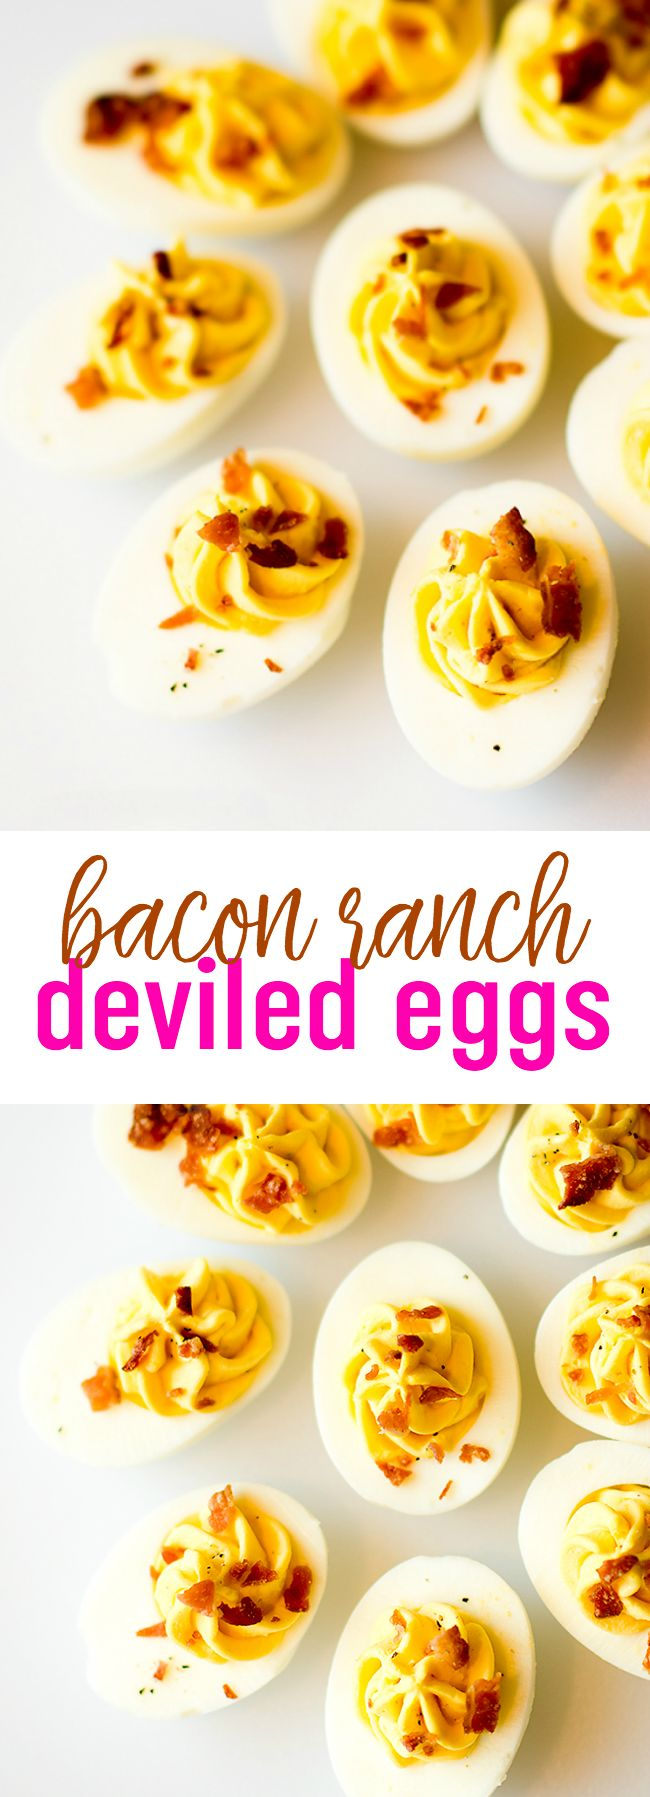 Bacon Ranch Deviled Eggs Recipe - These yummy deviled eggs are perfect for Easter or any family gathering.